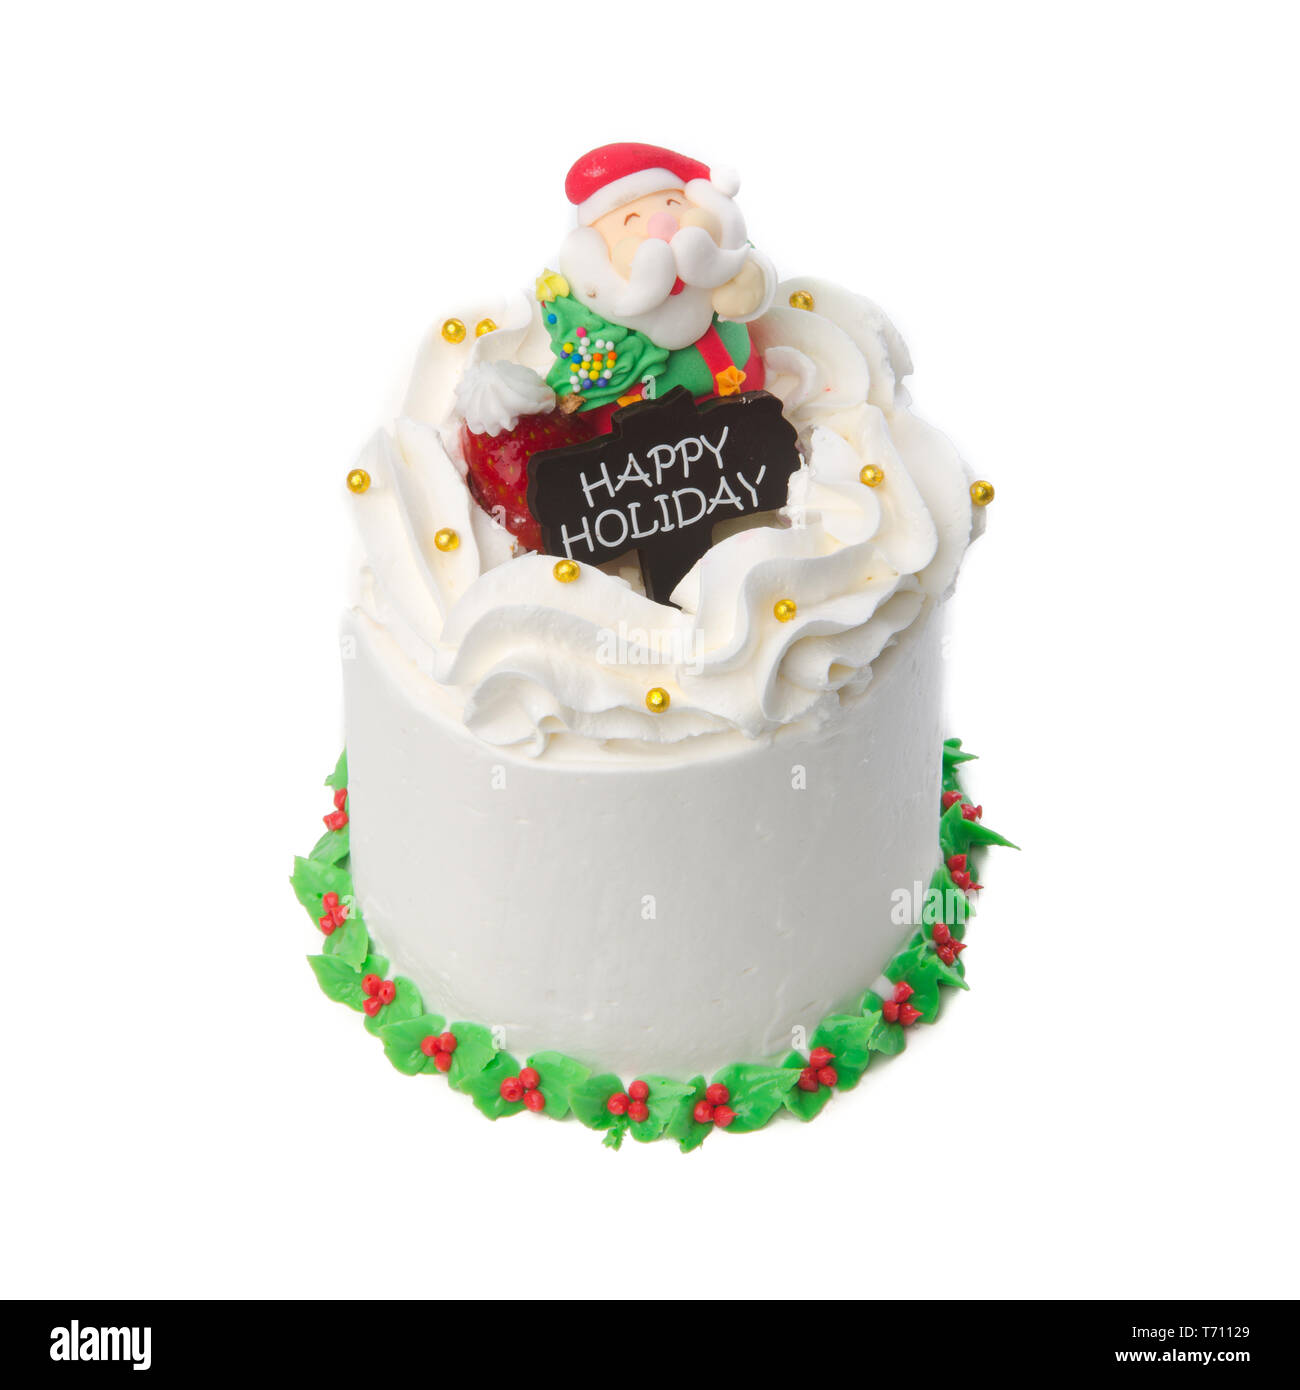 Surprising Cake Or Christmas Cakes On A Background Stock Photo 245270545 Alamy Funny Birthday Cards Online Necthendildamsfinfo